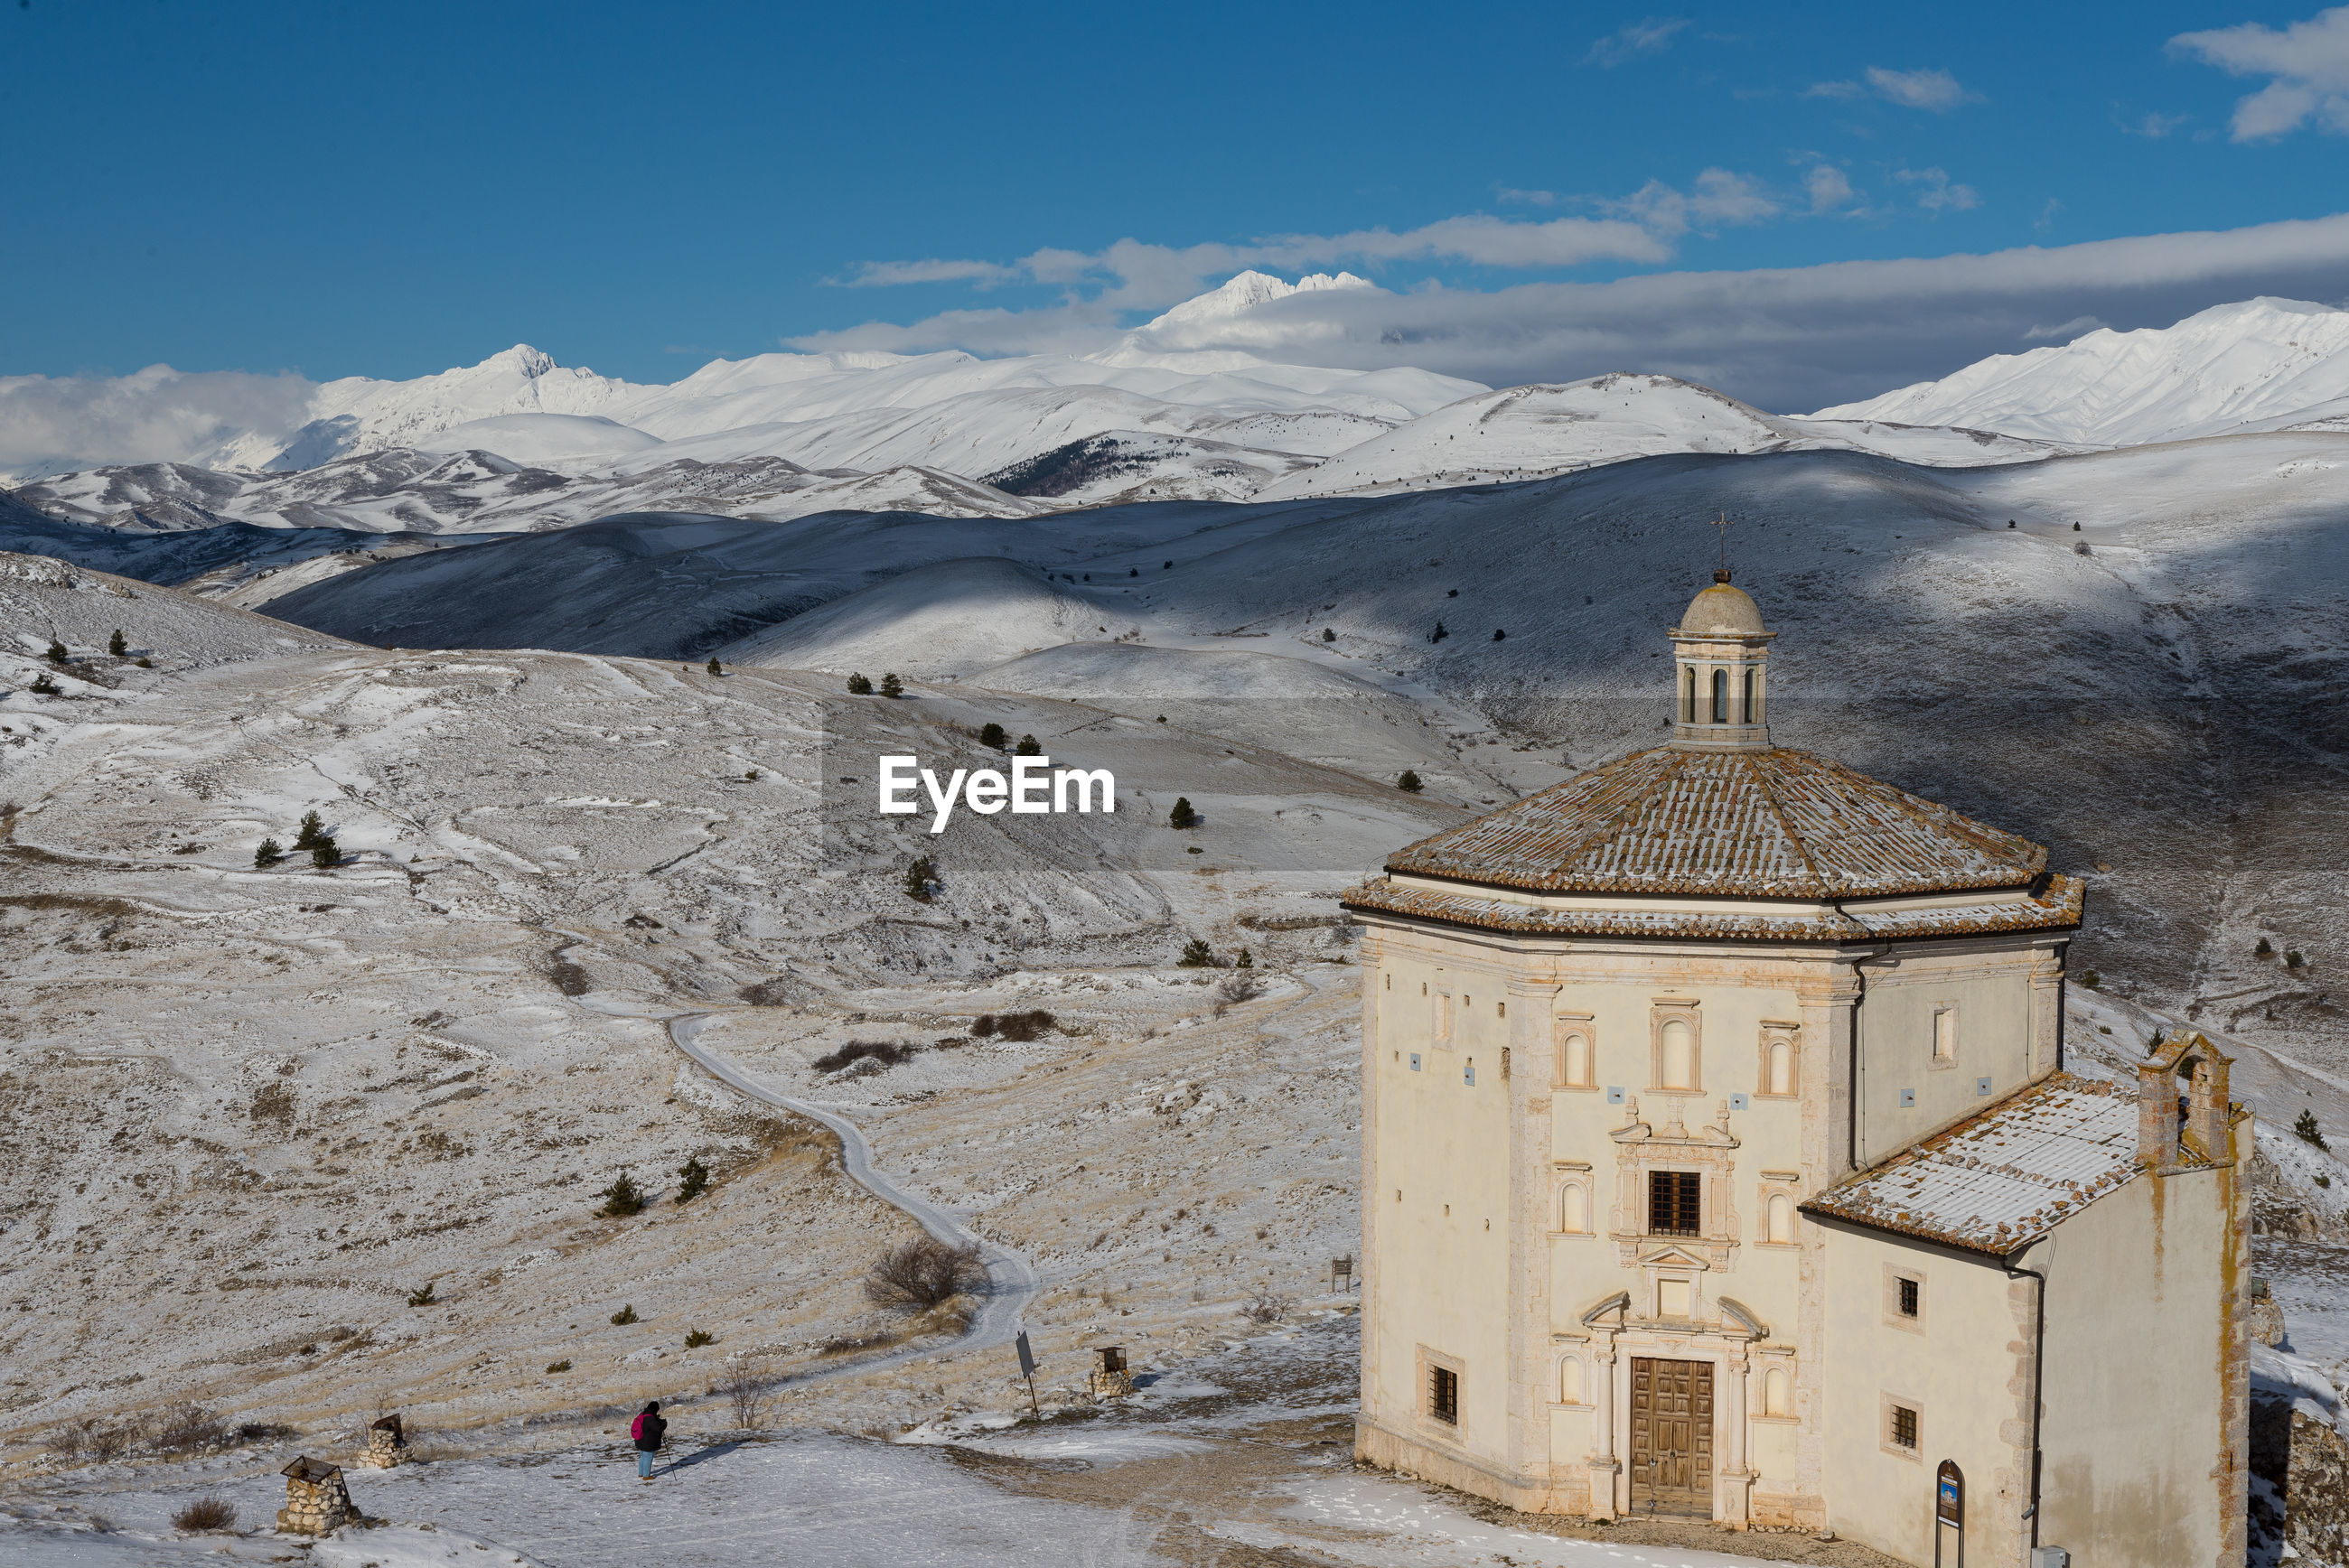 Ancient fortification and small church in the snowy mountains of abruzzo, italy